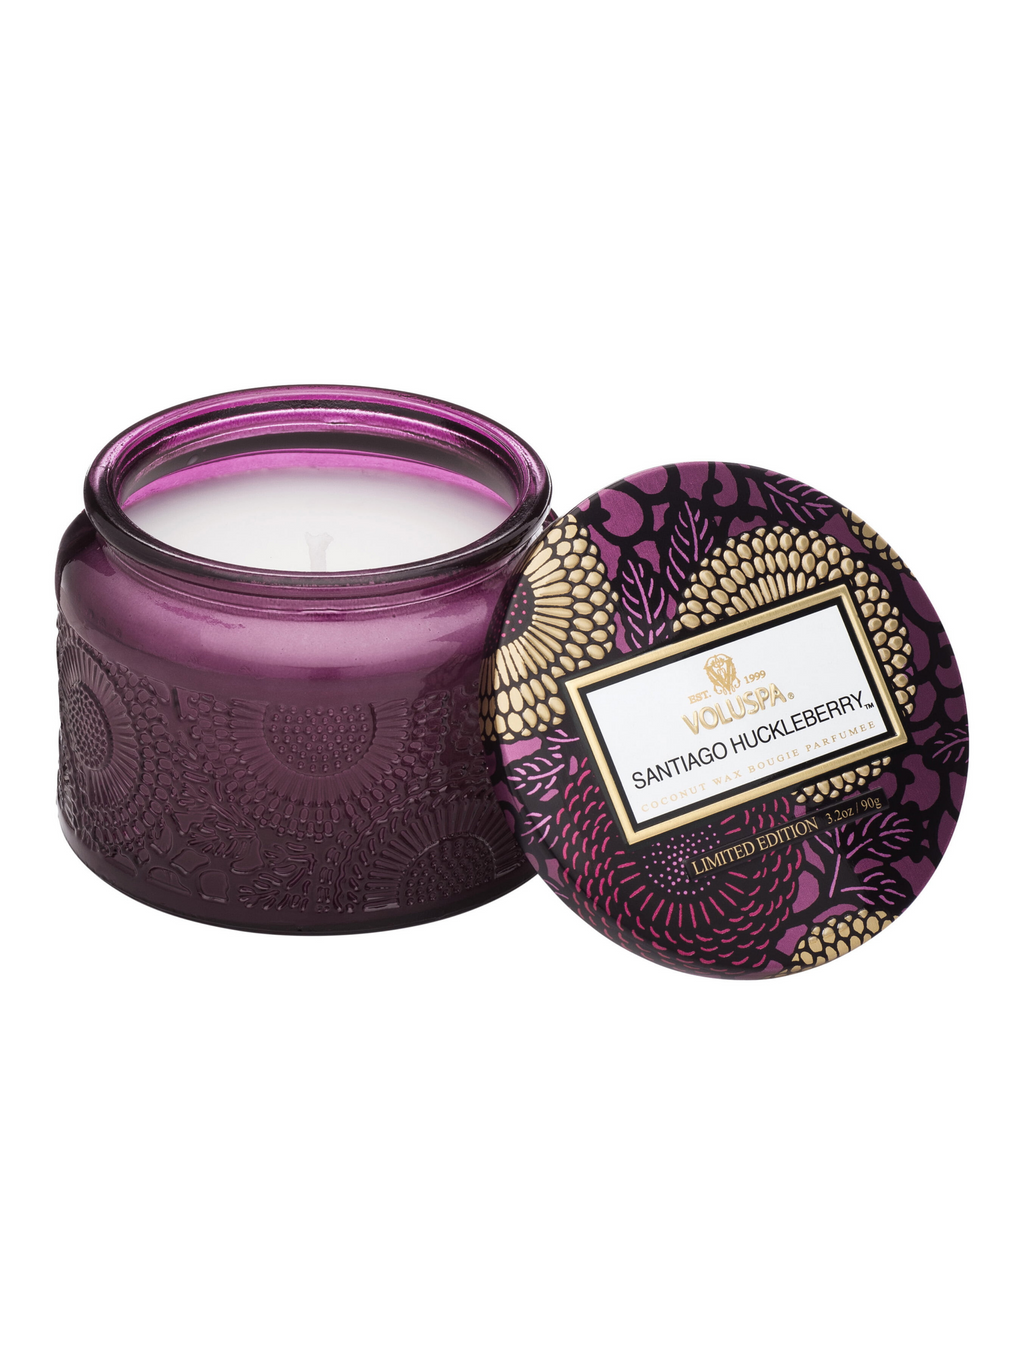 Santiago Huckleberry Candle - 3.2oz